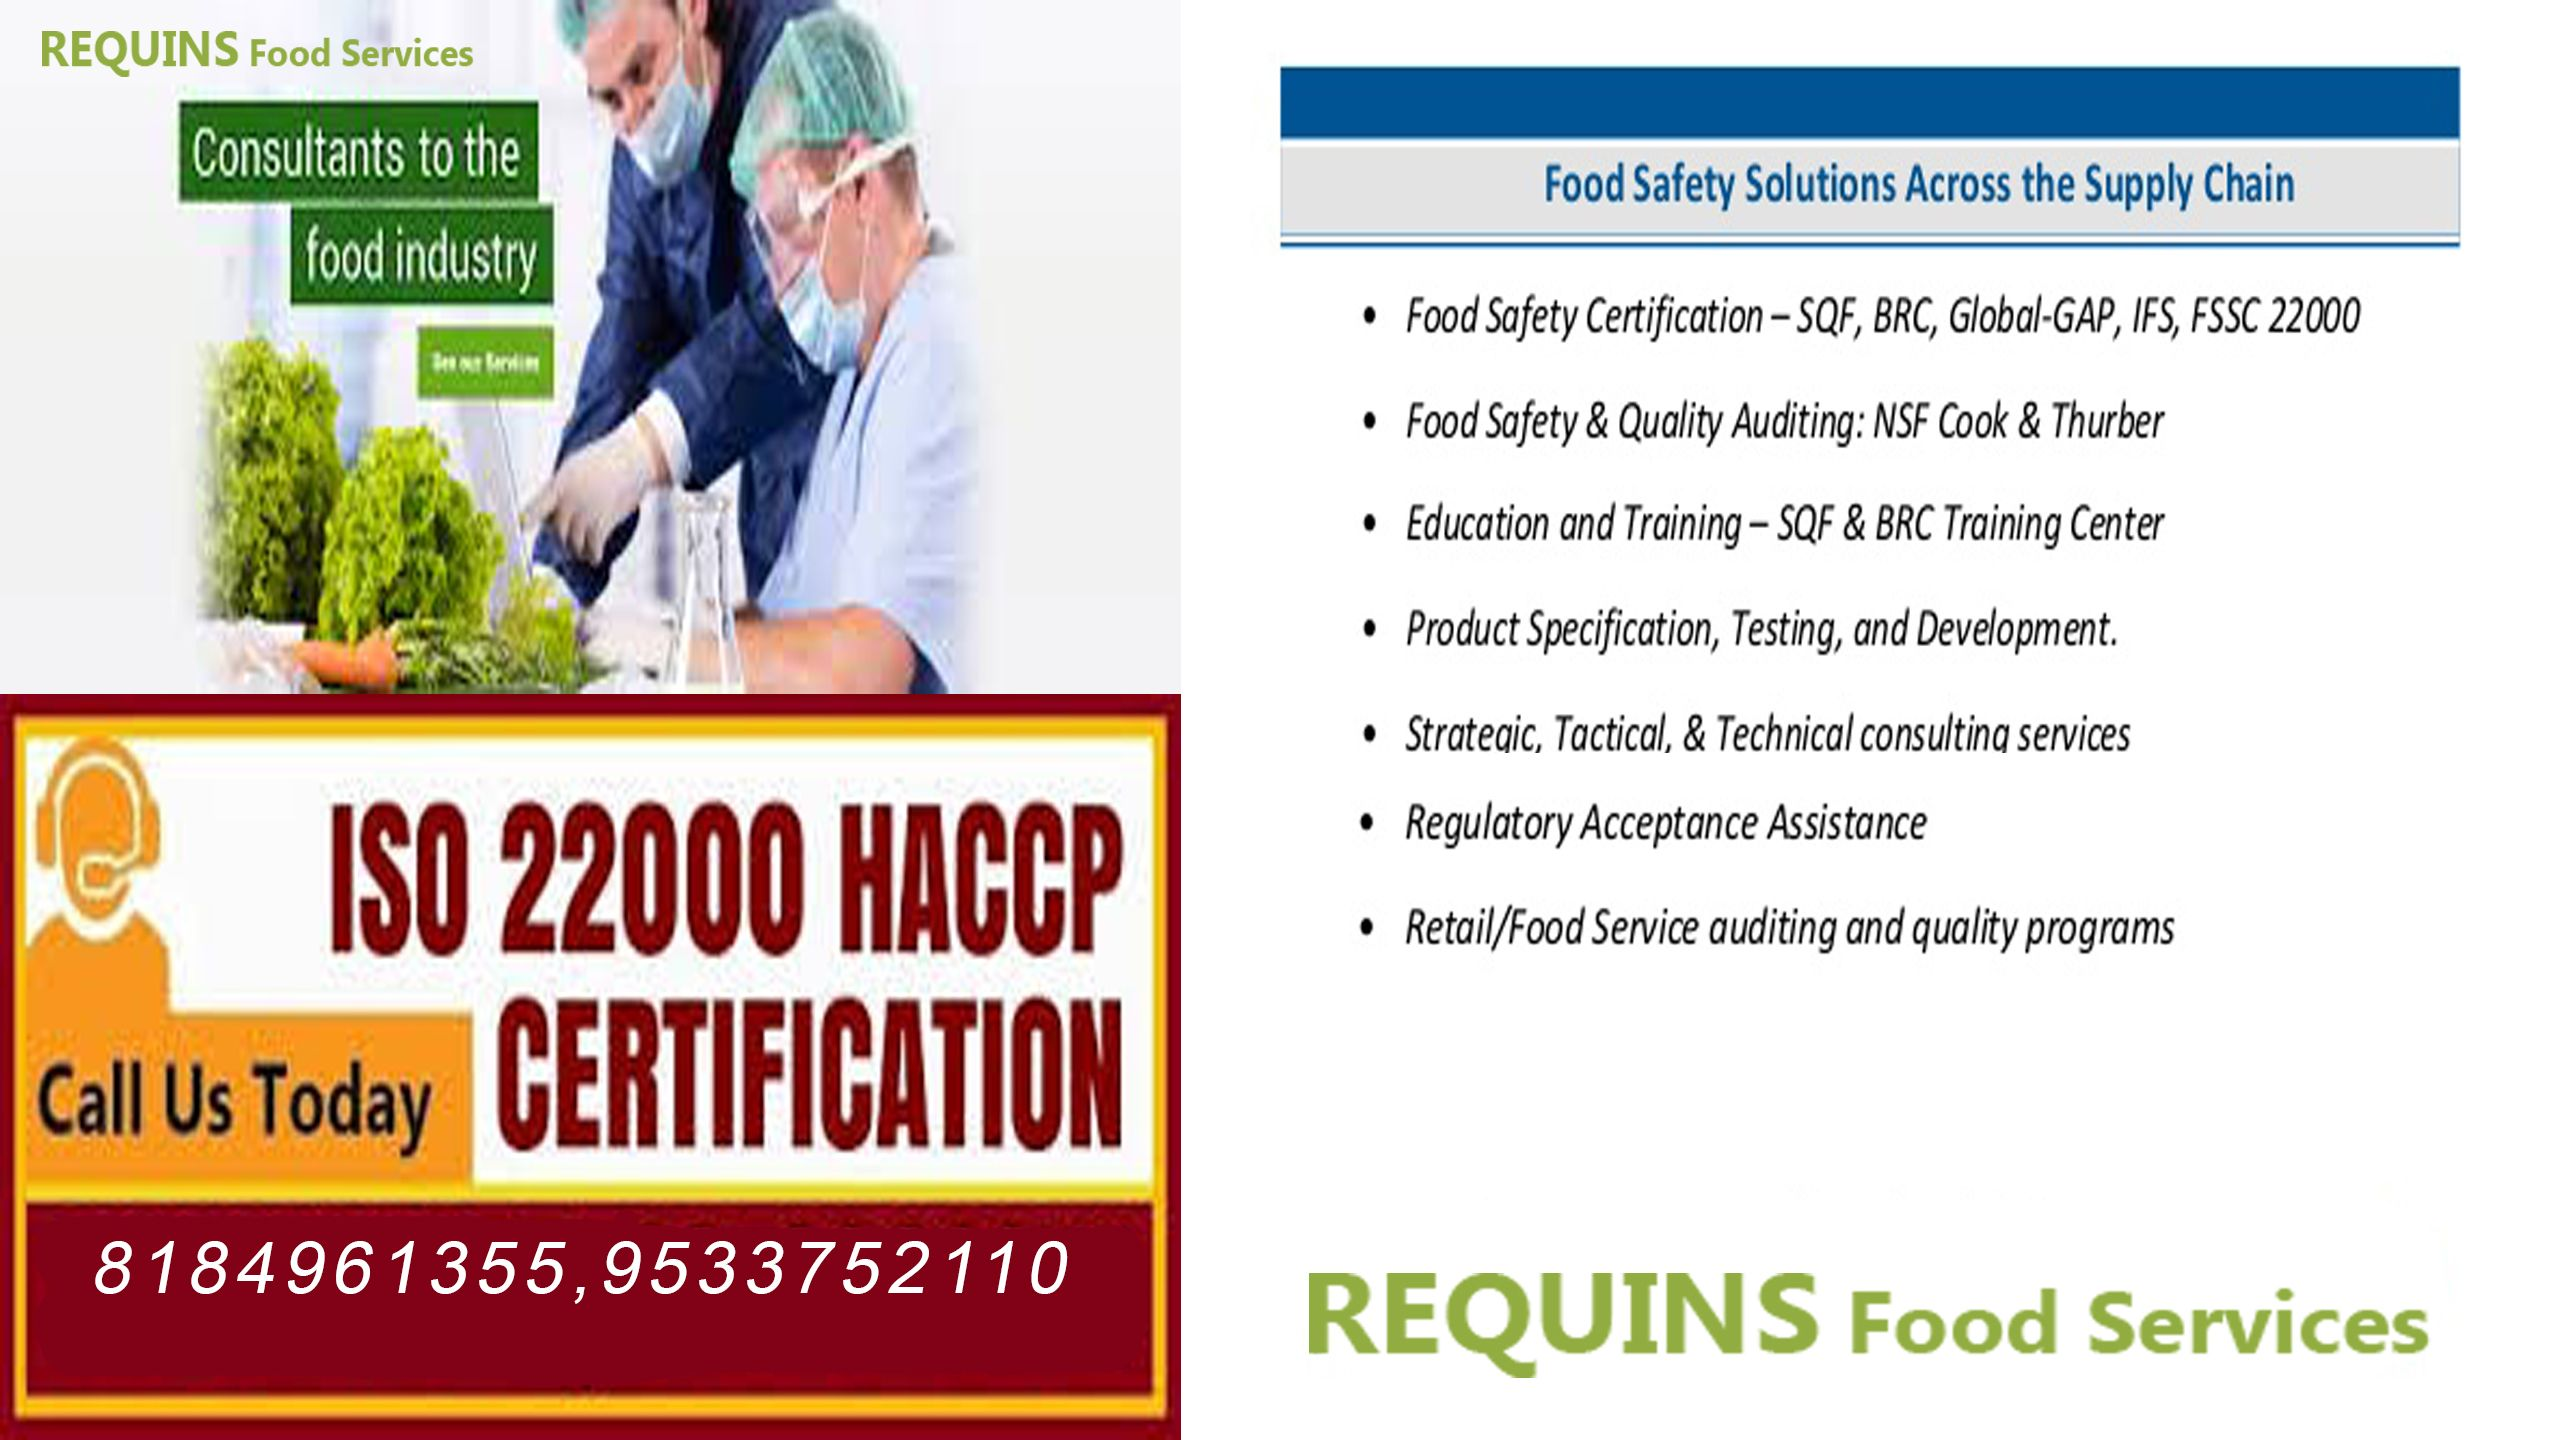 Requinsfoodservices is one of the best food Quality and